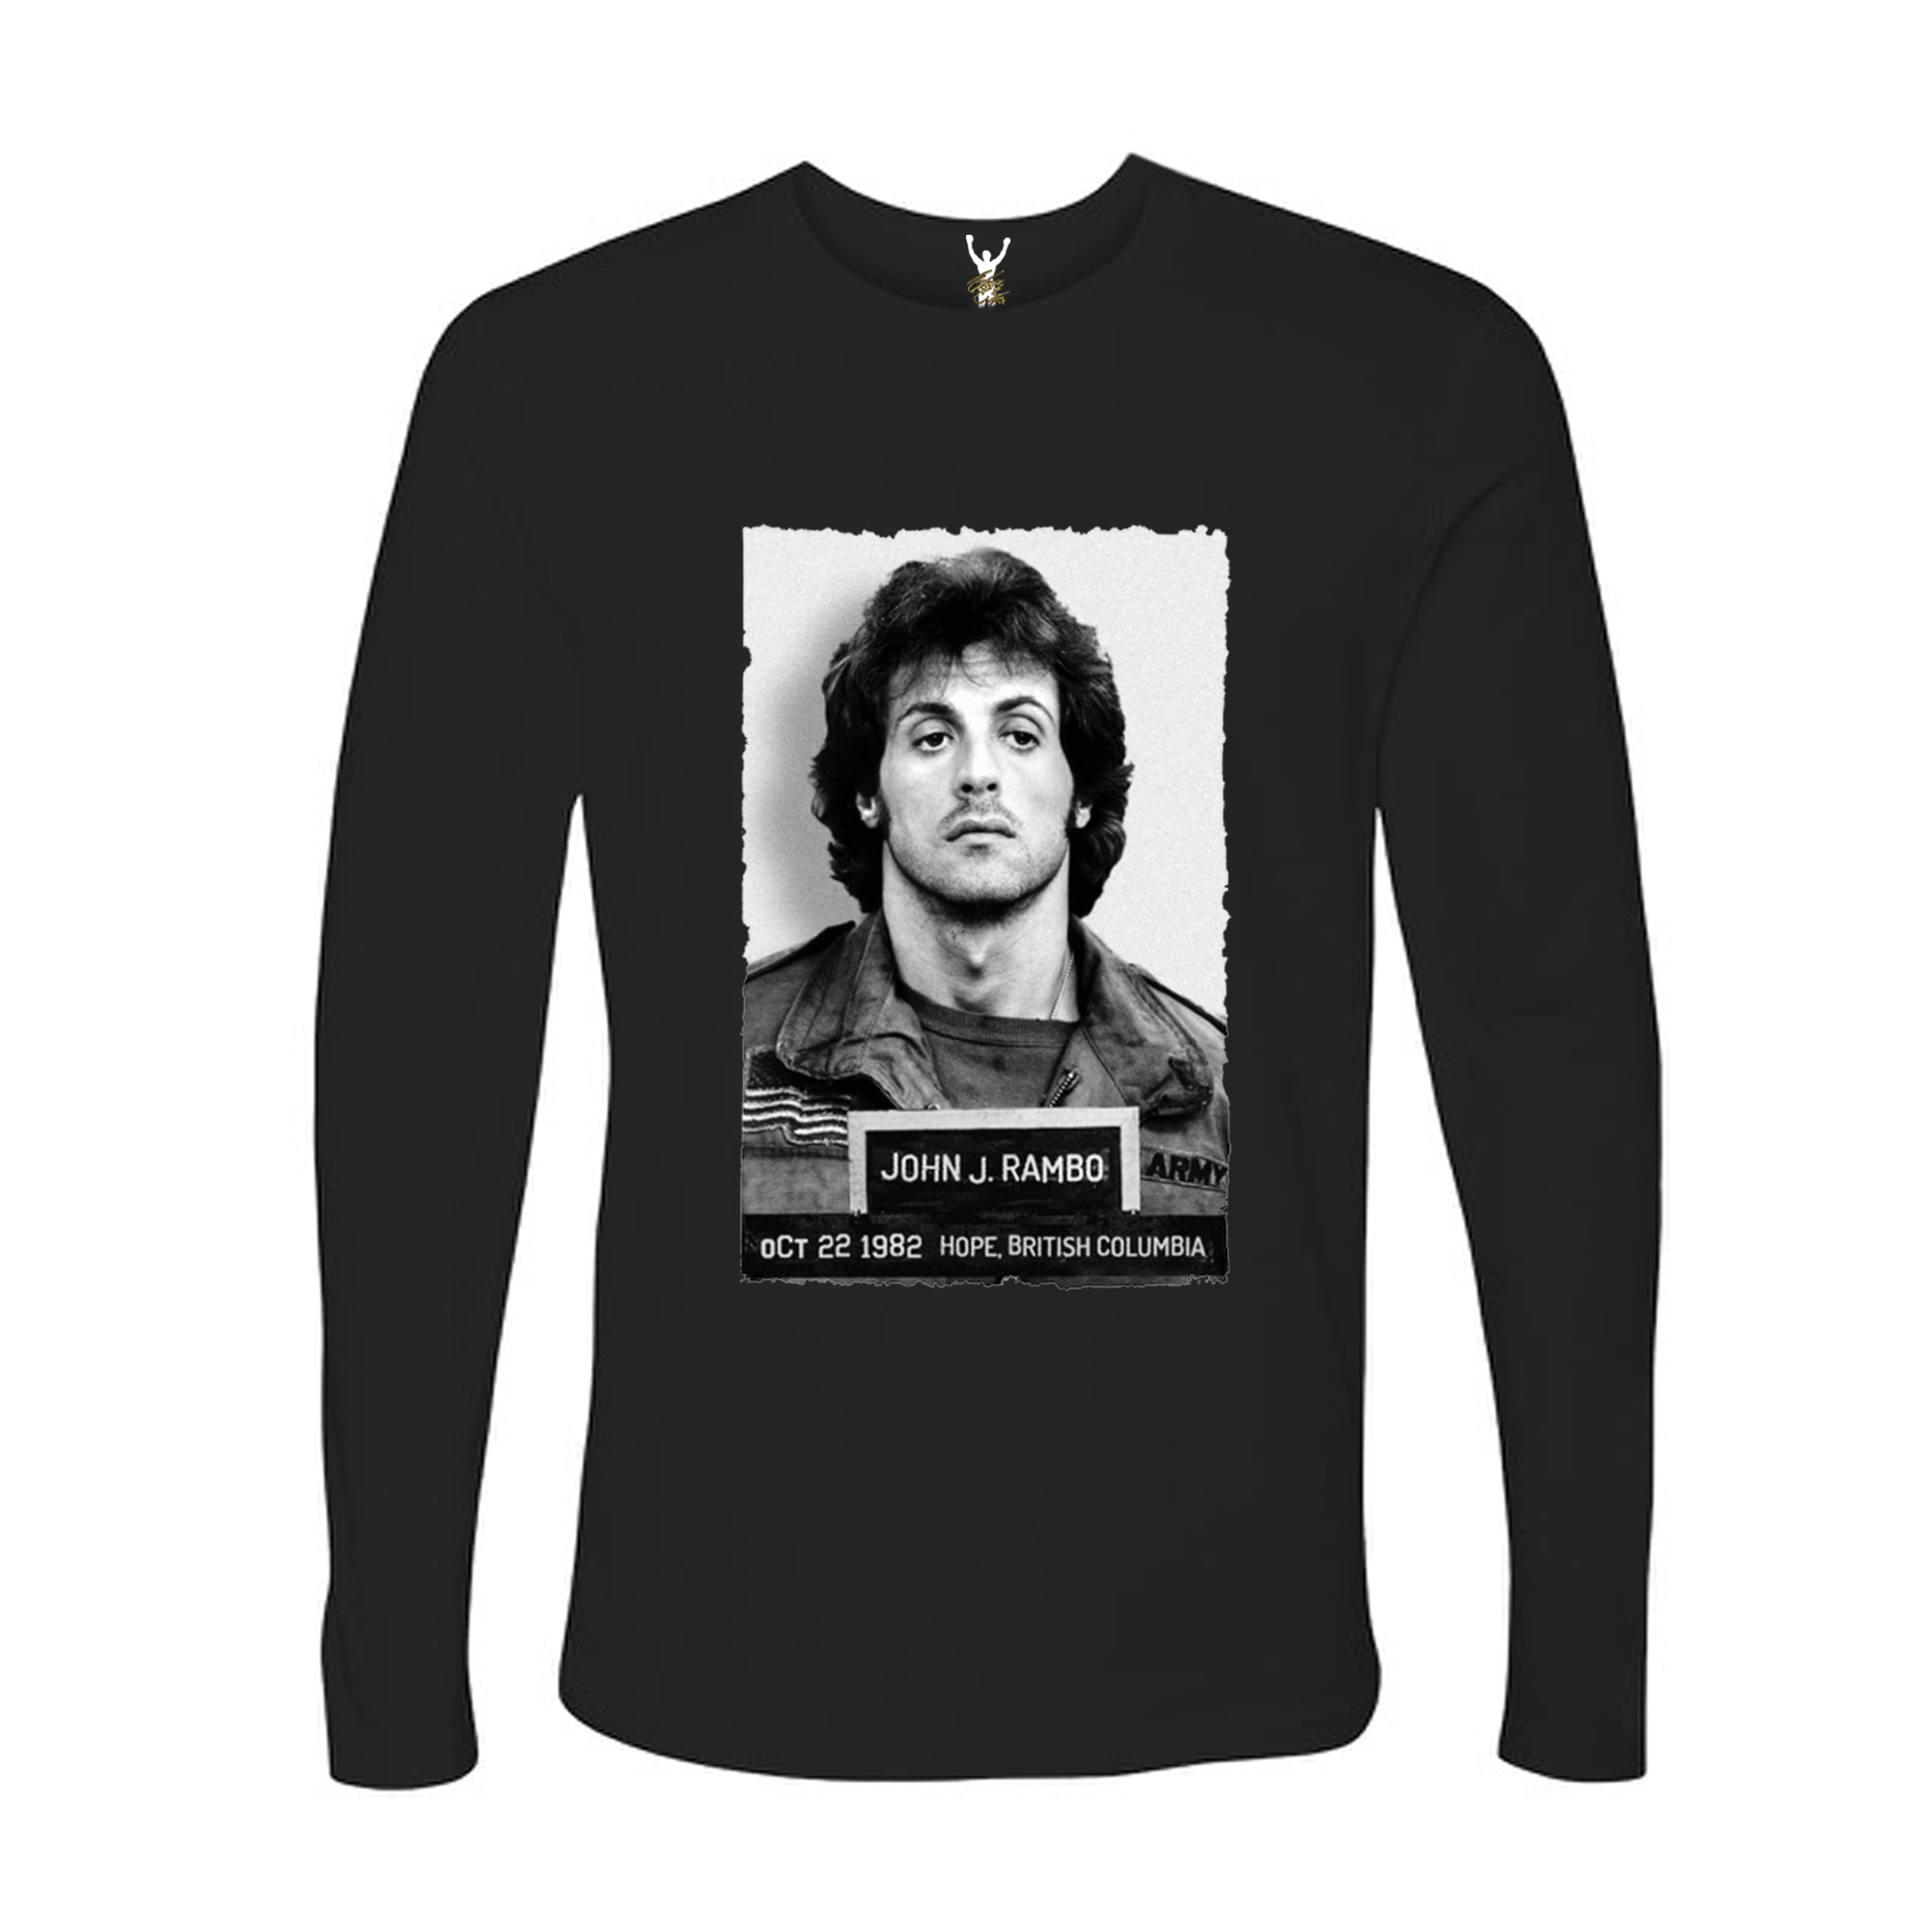 John Rambo Mugshot long sleeves